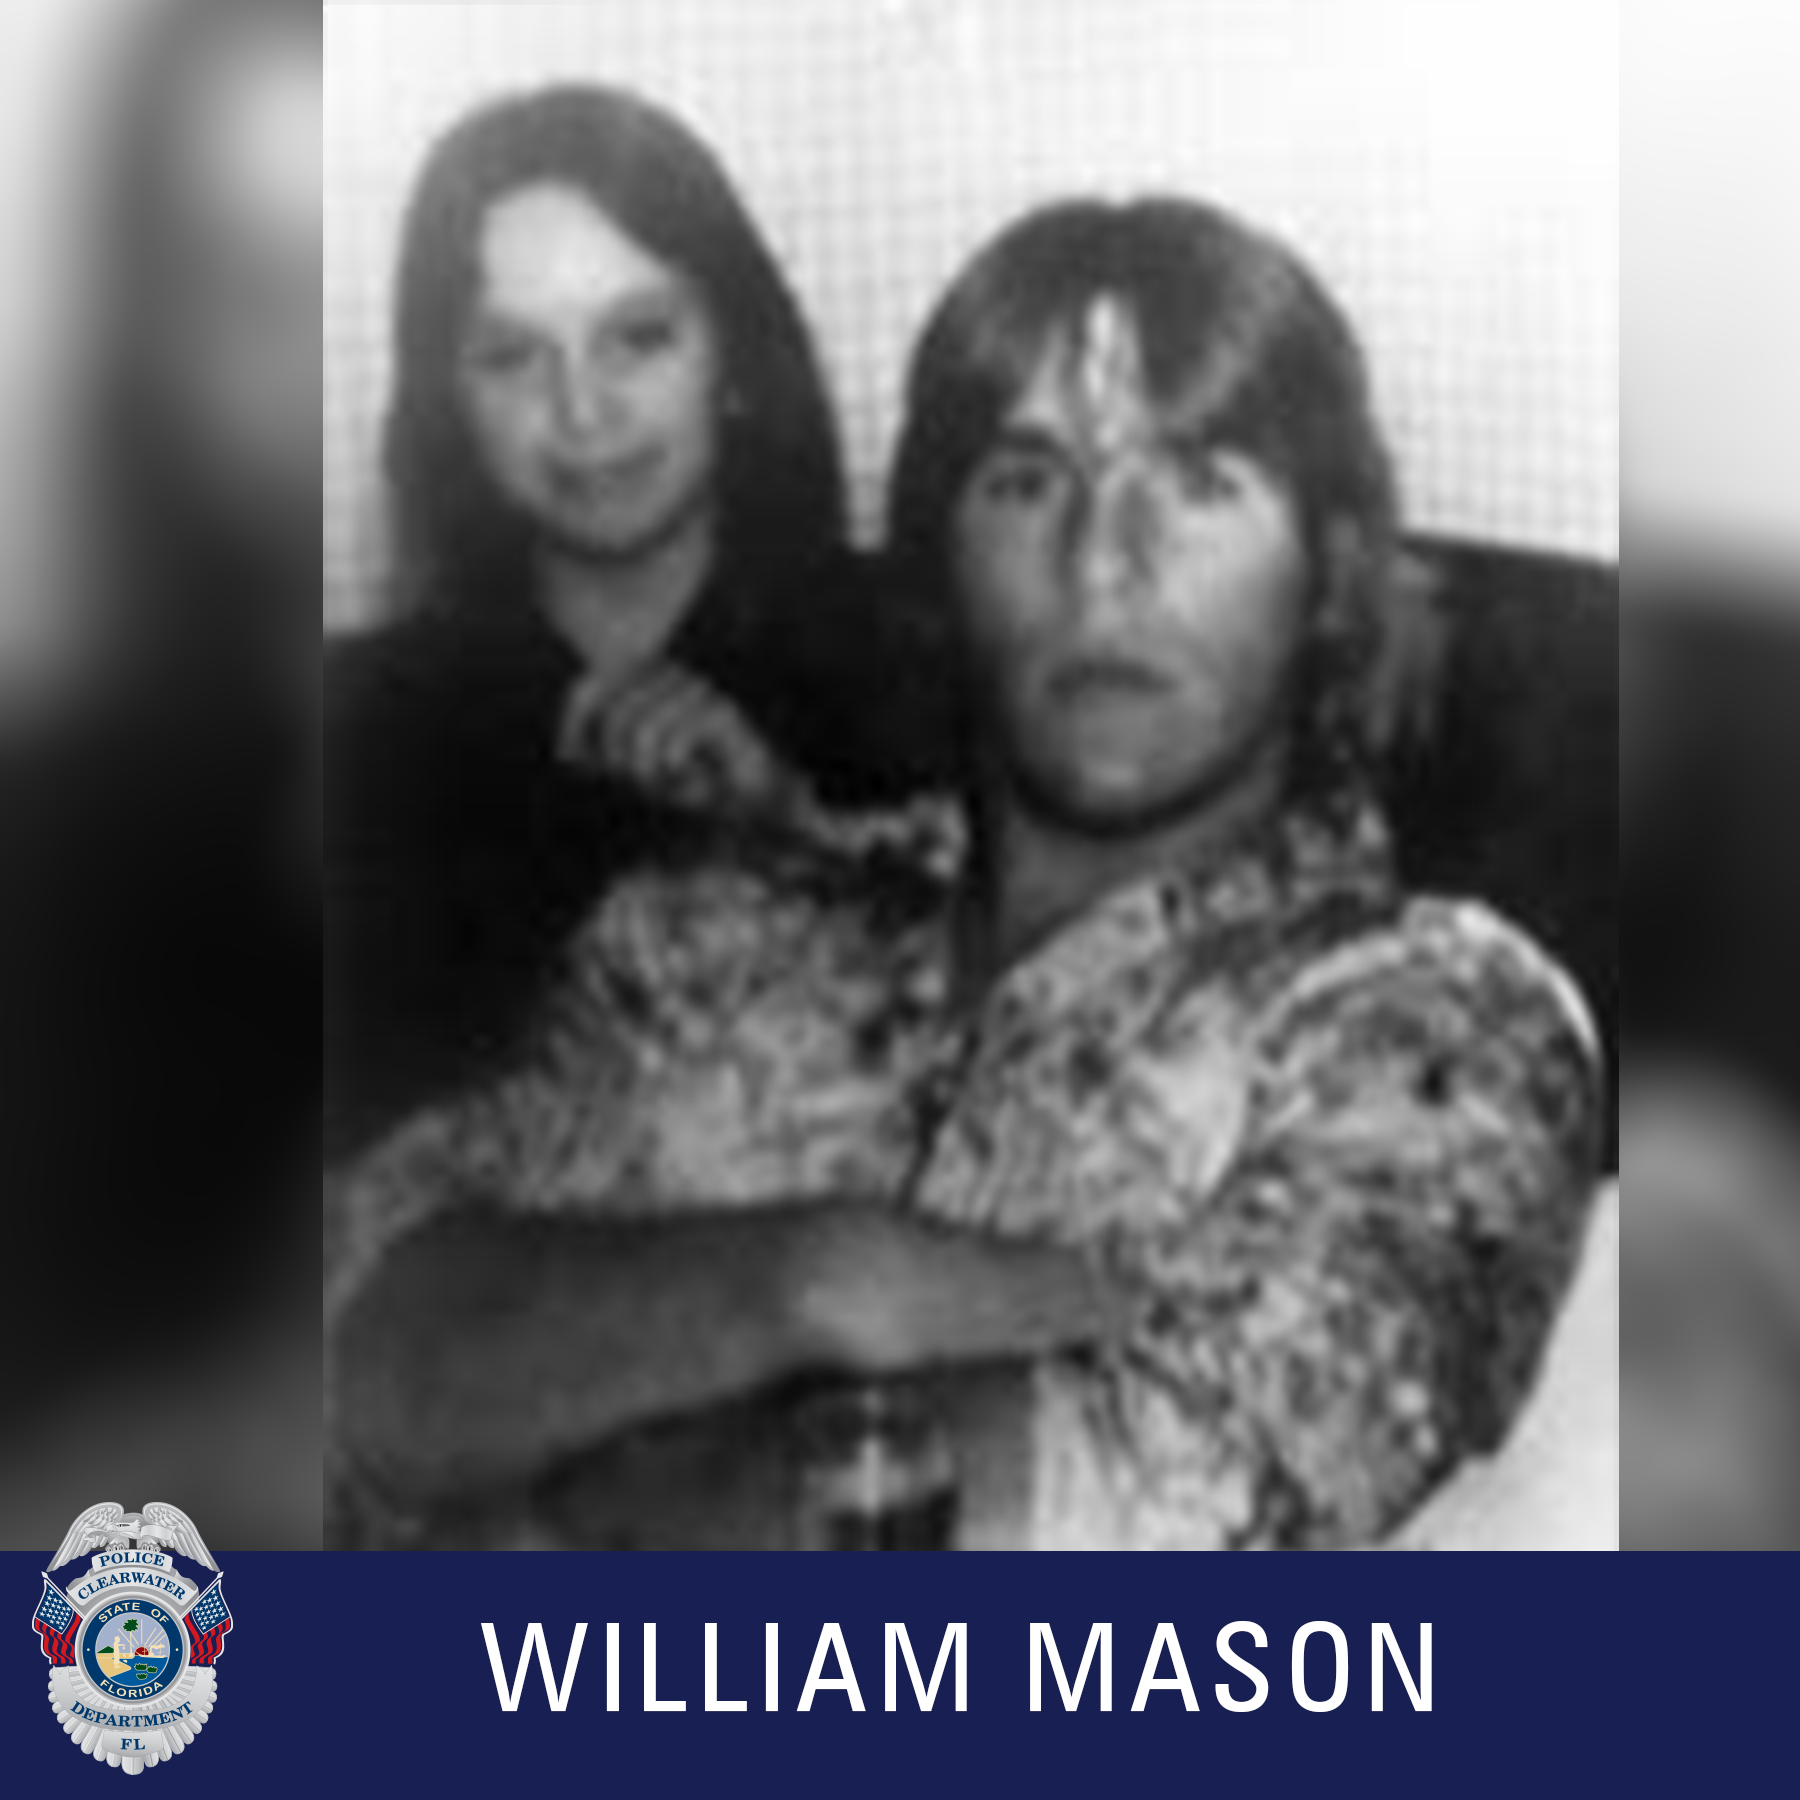 William Mason, Clearwater Police Department Shield, Black and white photo of a male crossing his arm with long hair while a female stands behind him